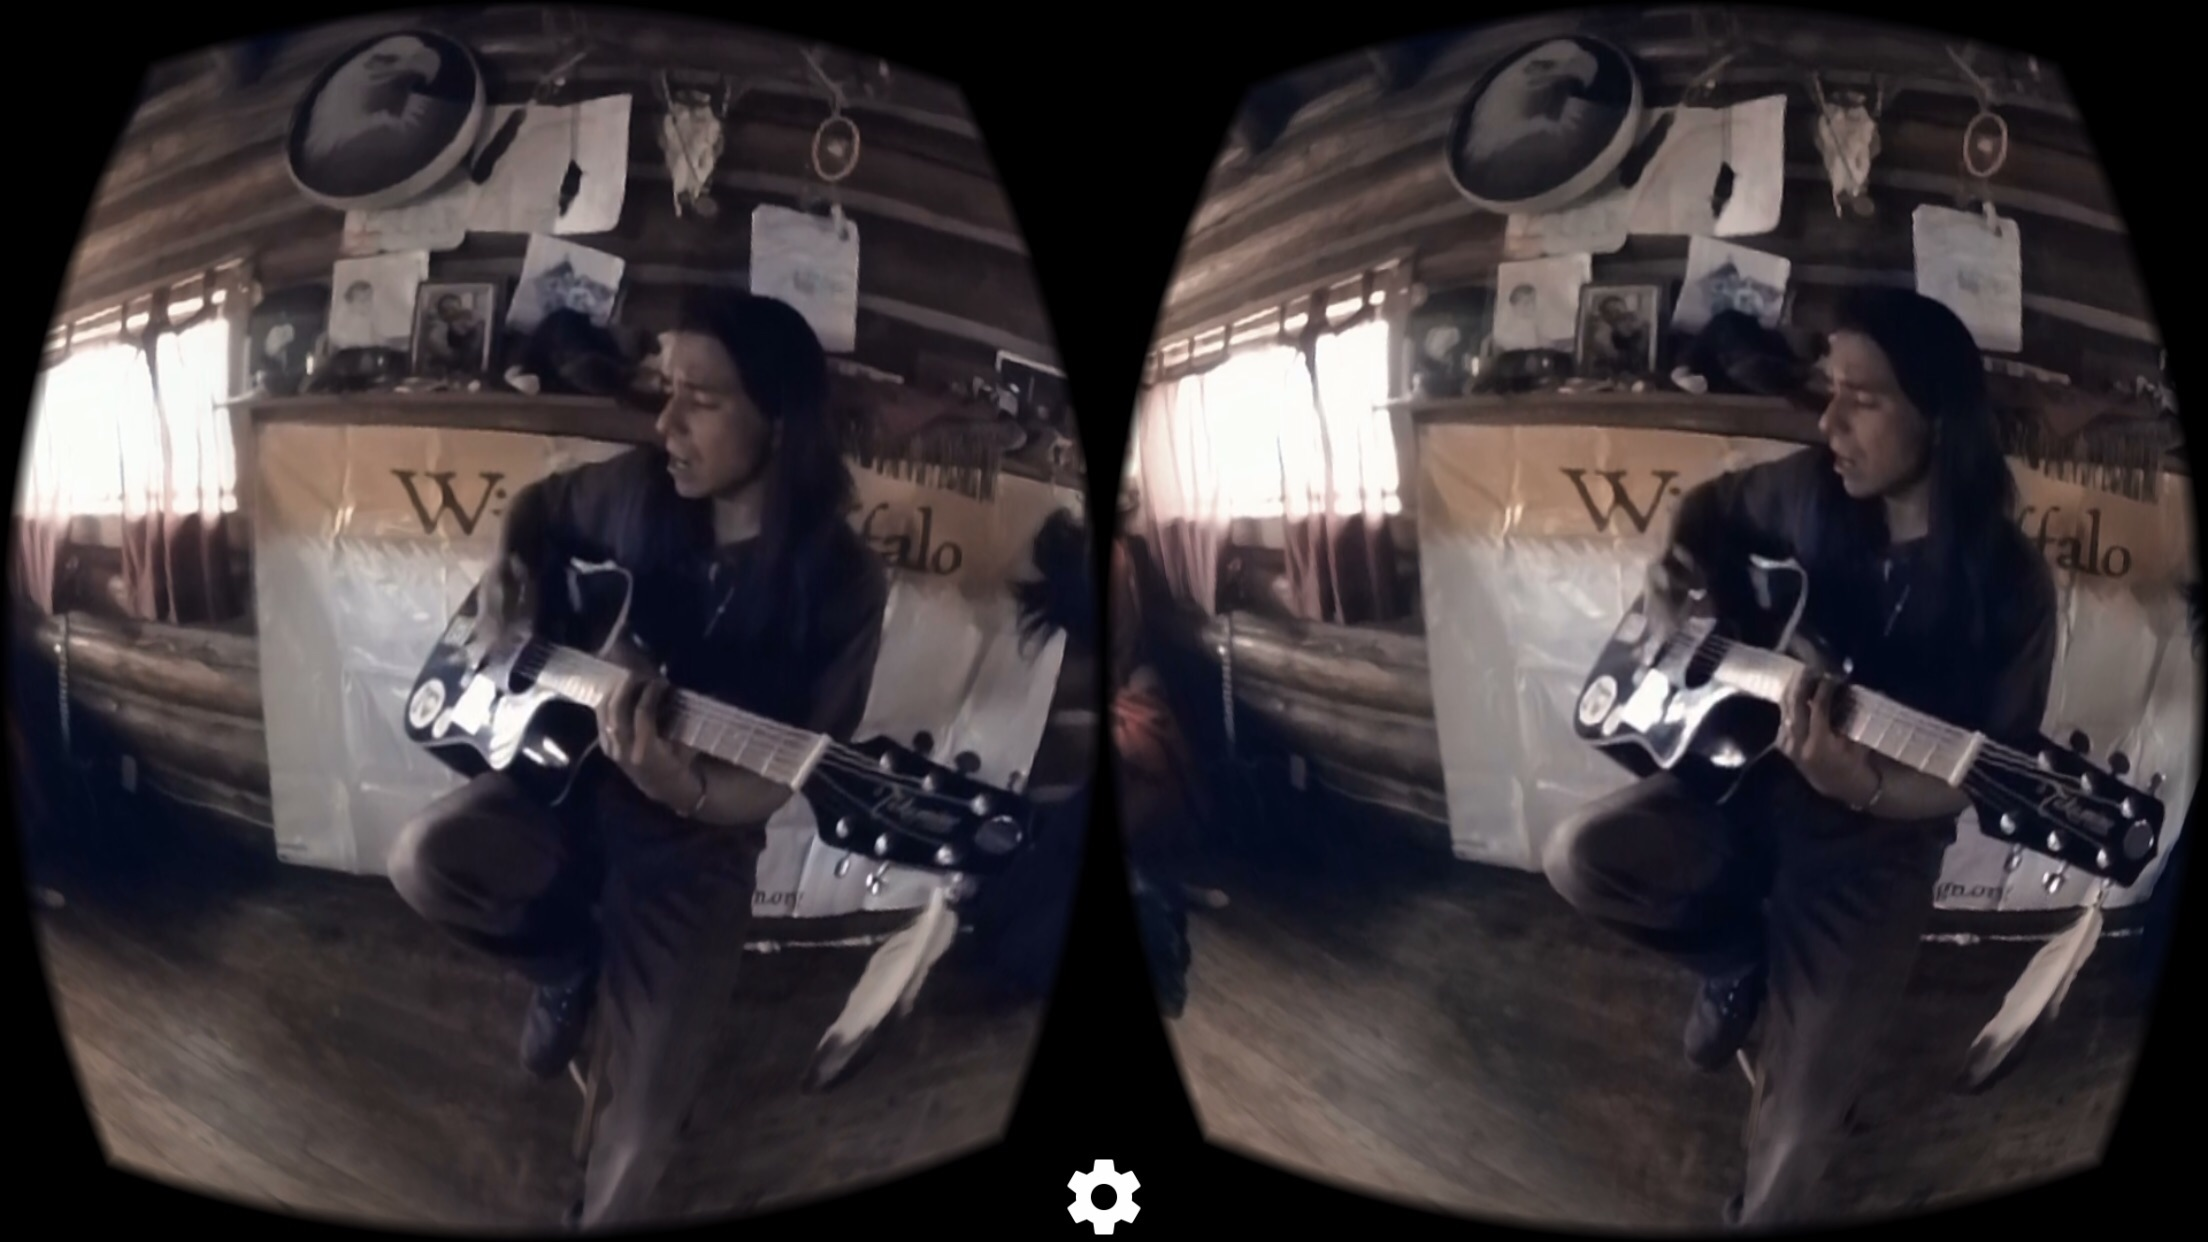 Within VR app